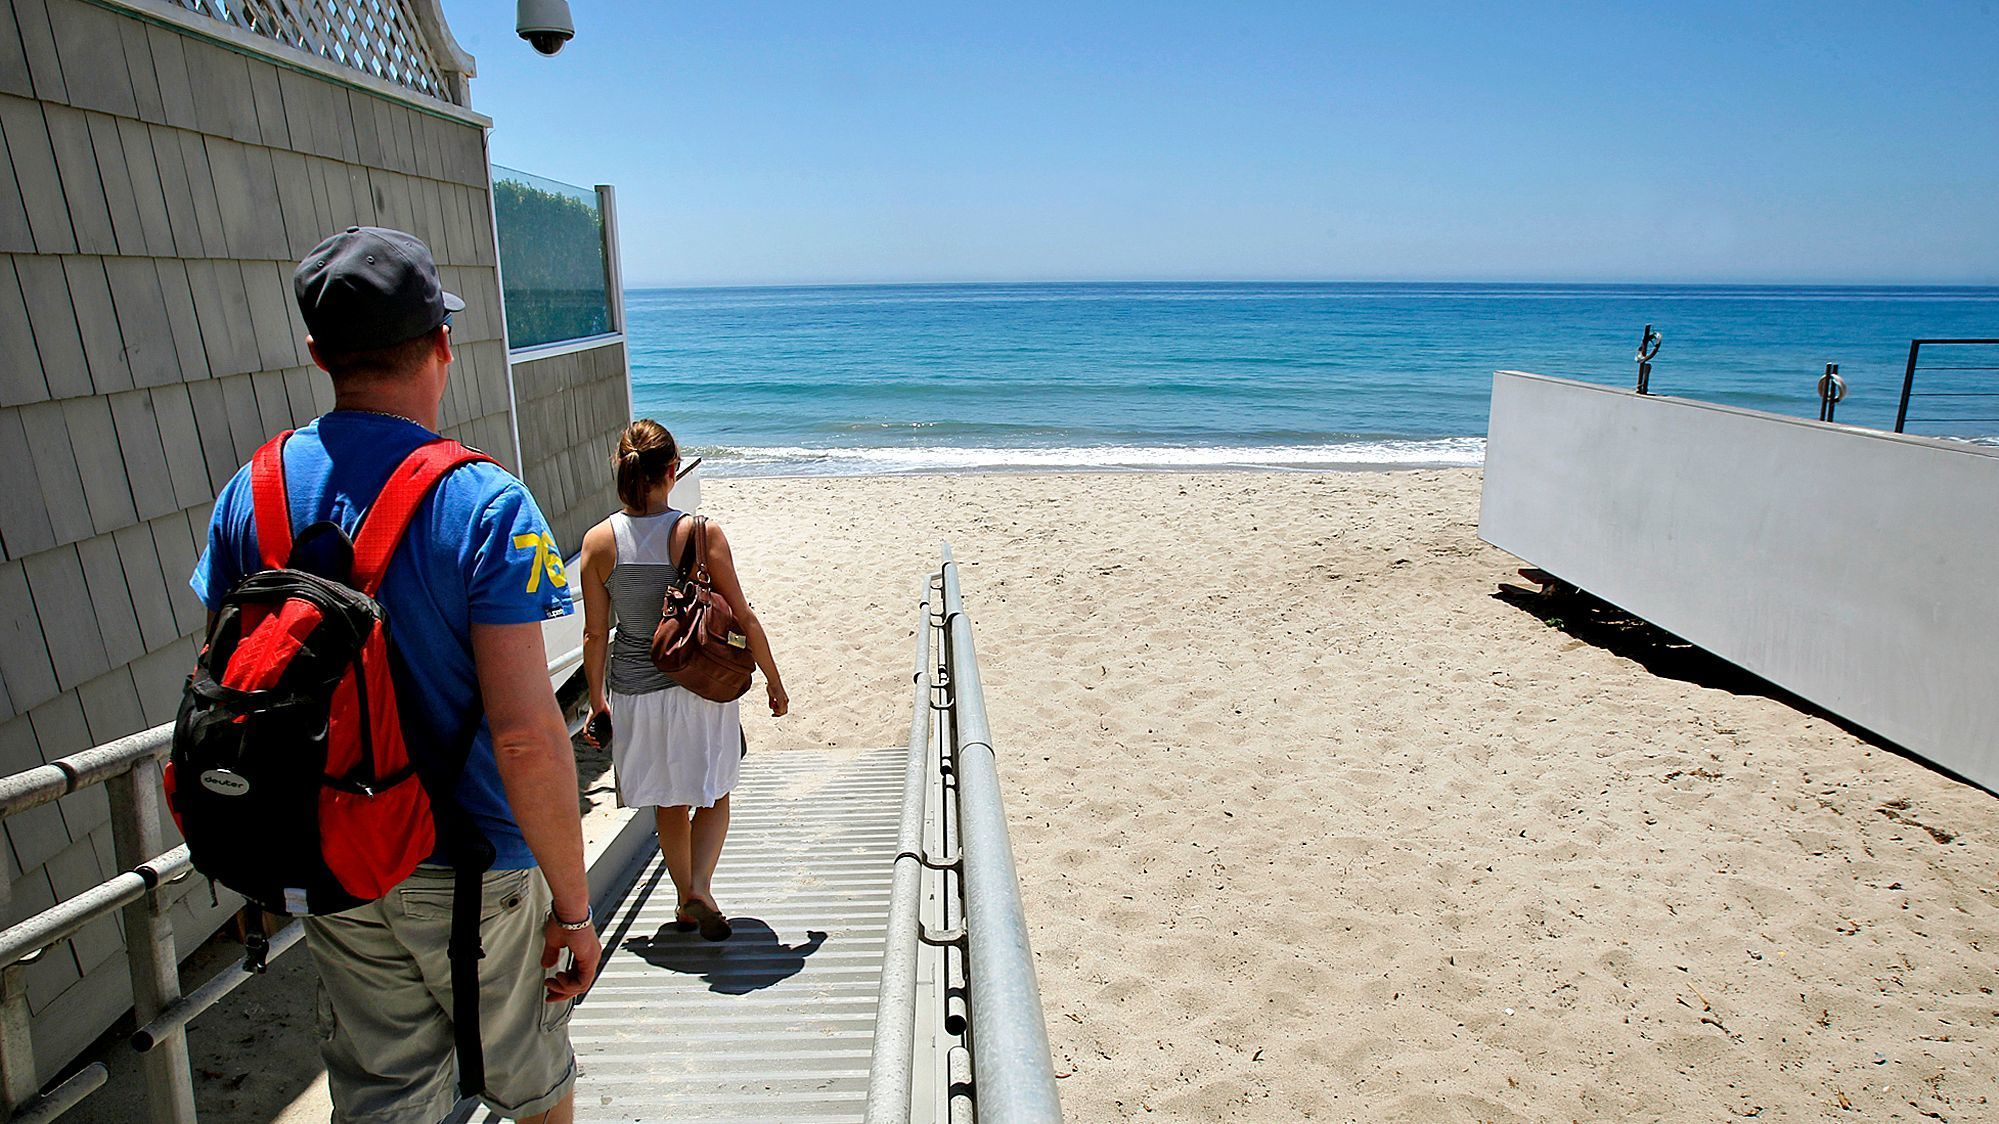 Beachgoers get to Carbon Beach in Malibu through a public accessway alongside David Geffen's former home.